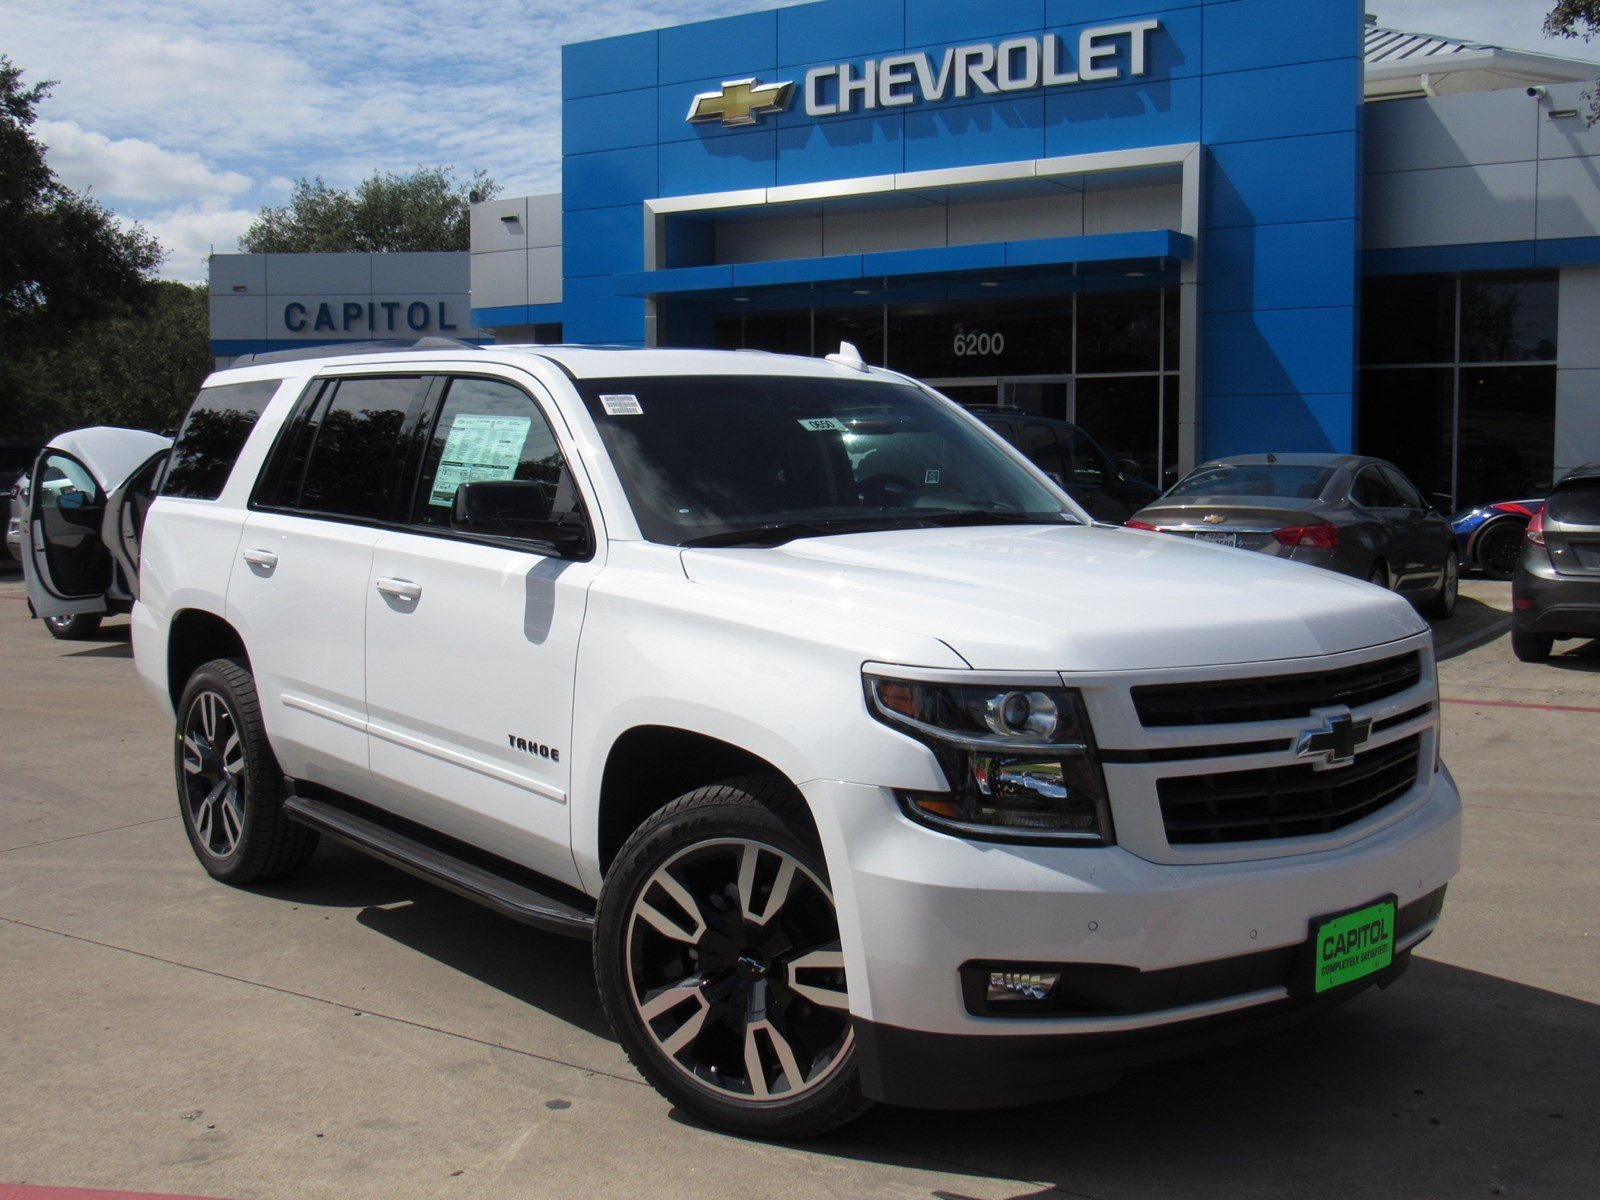 new 2018 chevrolet tahoe premier sport utility in austin 180650 capitol chevrolet. Black Bedroom Furniture Sets. Home Design Ideas